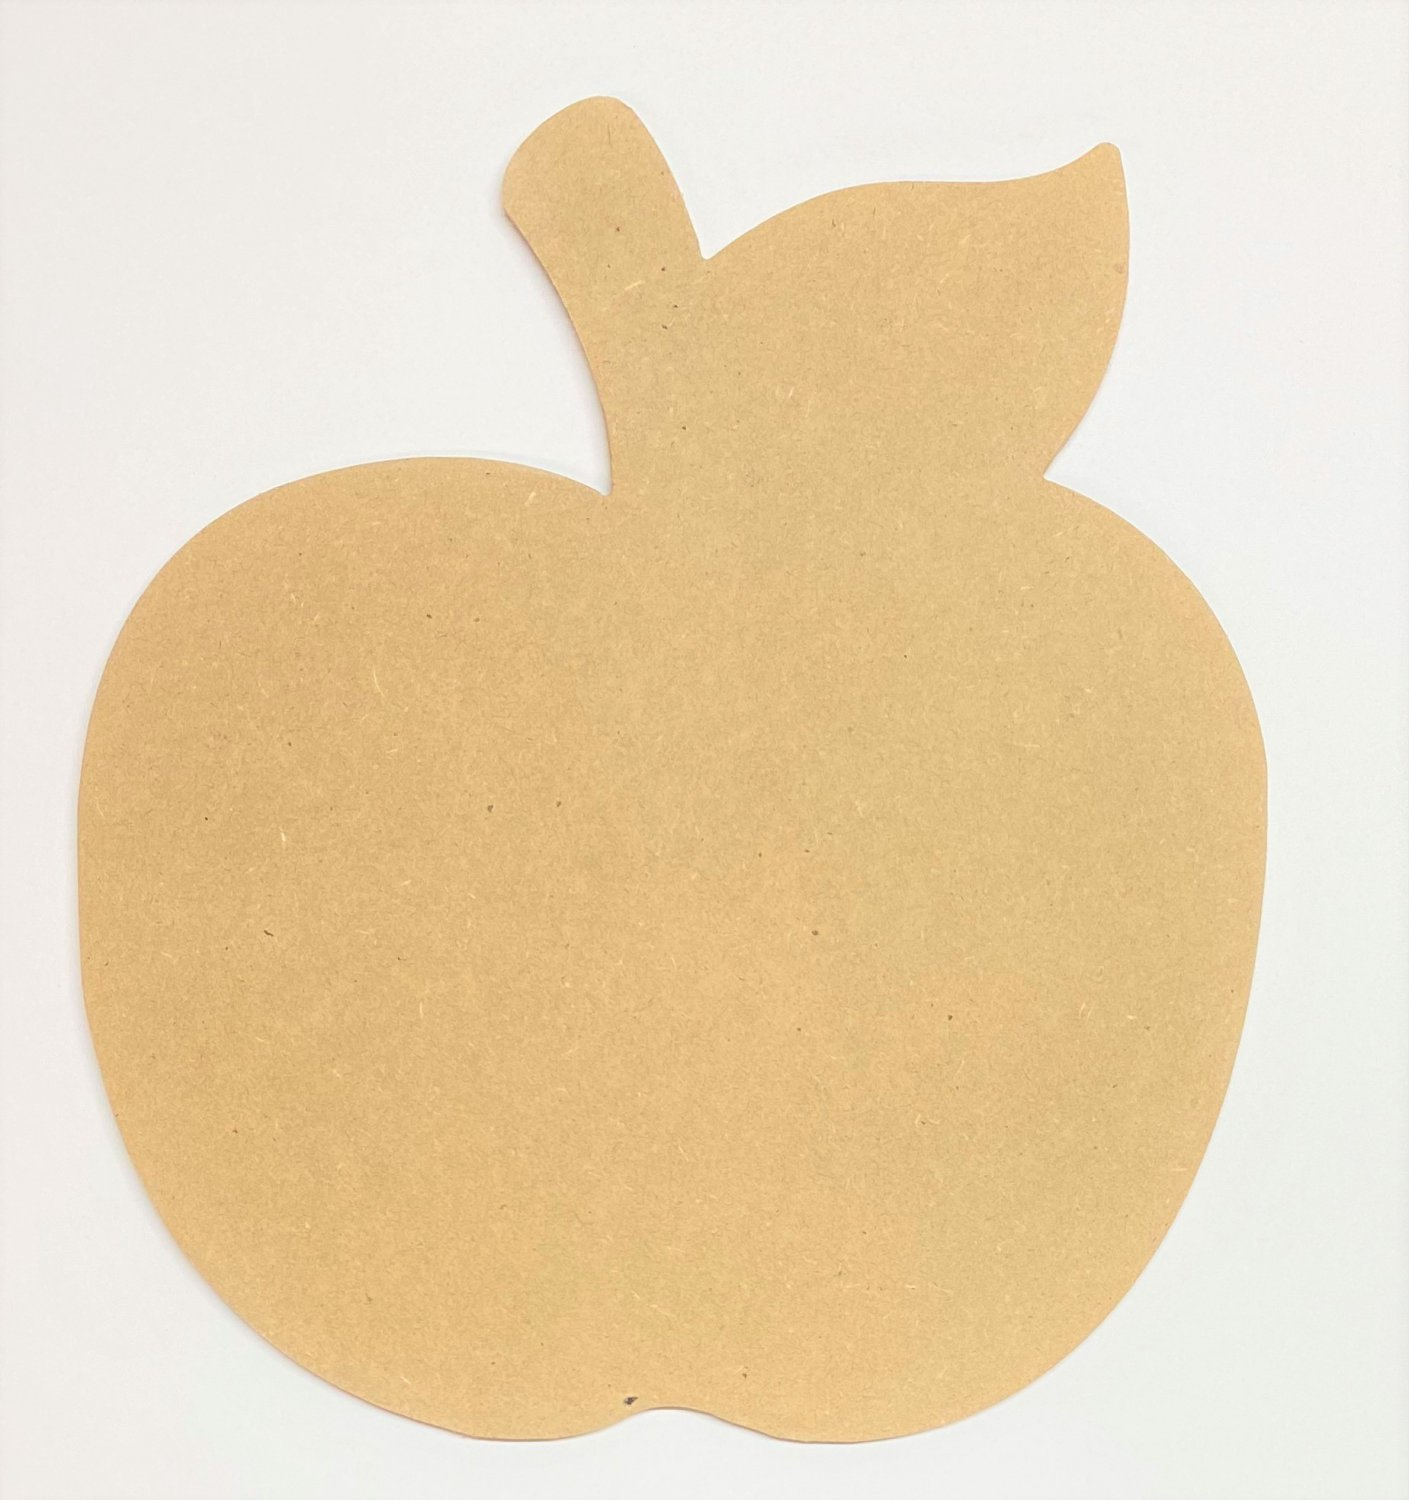 """24"""" - Apple - 1/4""""Thick MDF Cut Out Made in the USA"""